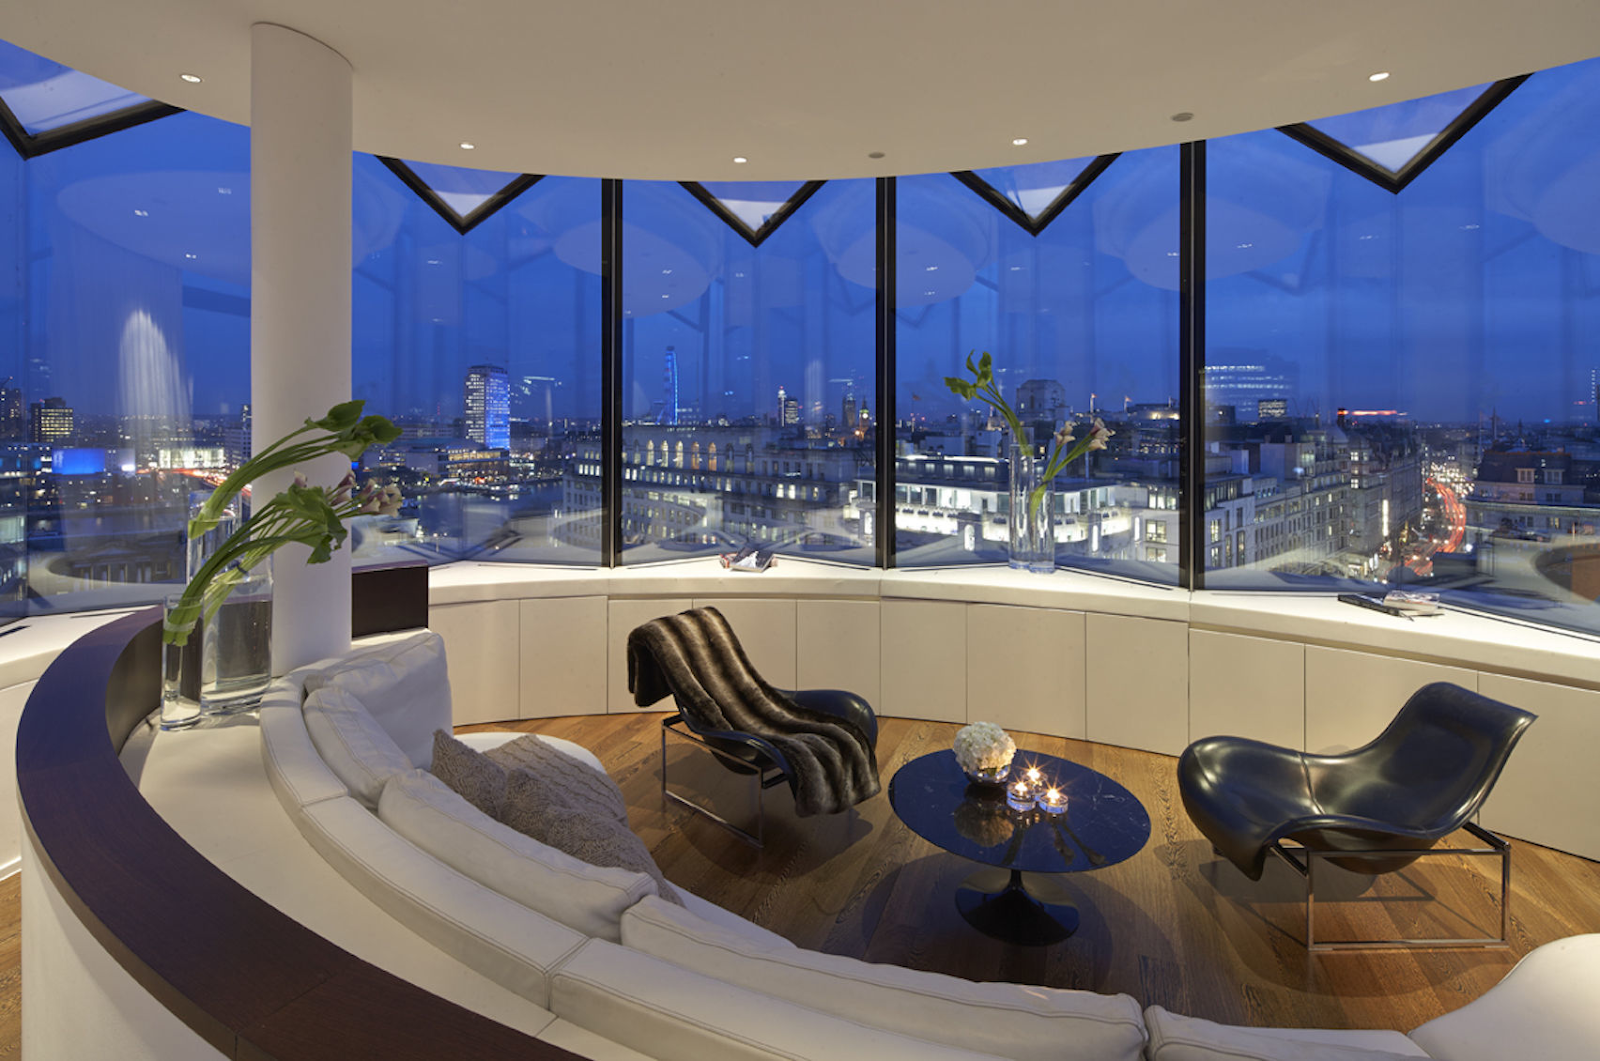 a penthouse suite at ME London, with two black chairs set up facing each other. There is a large window overlooking London at nighttime